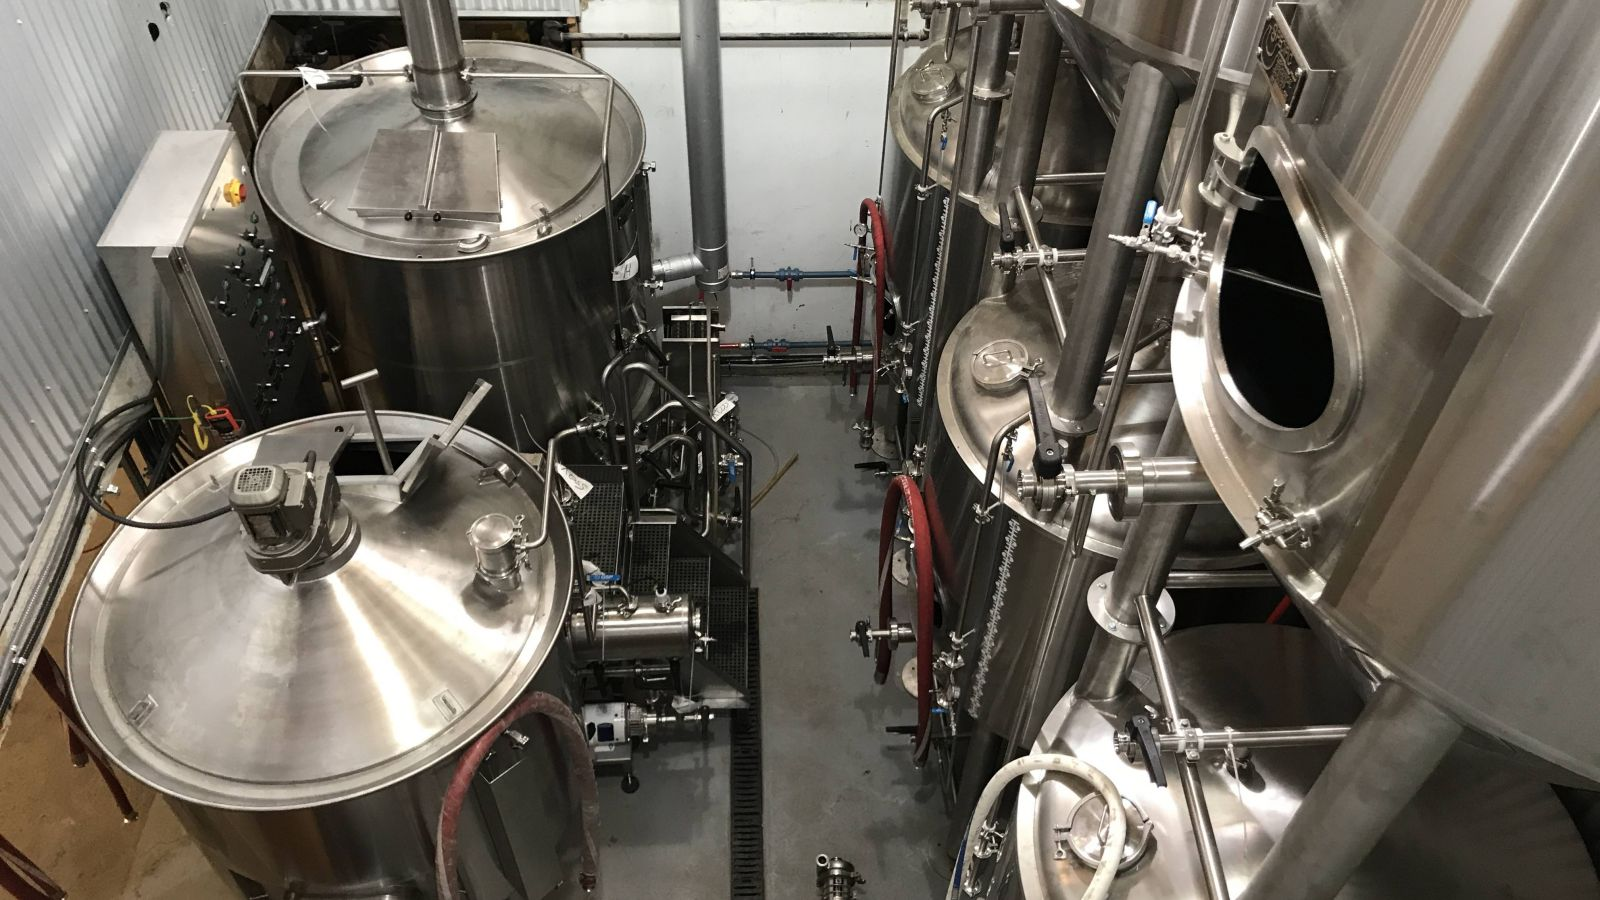 Where the magic happens - Rossland Beer Co.